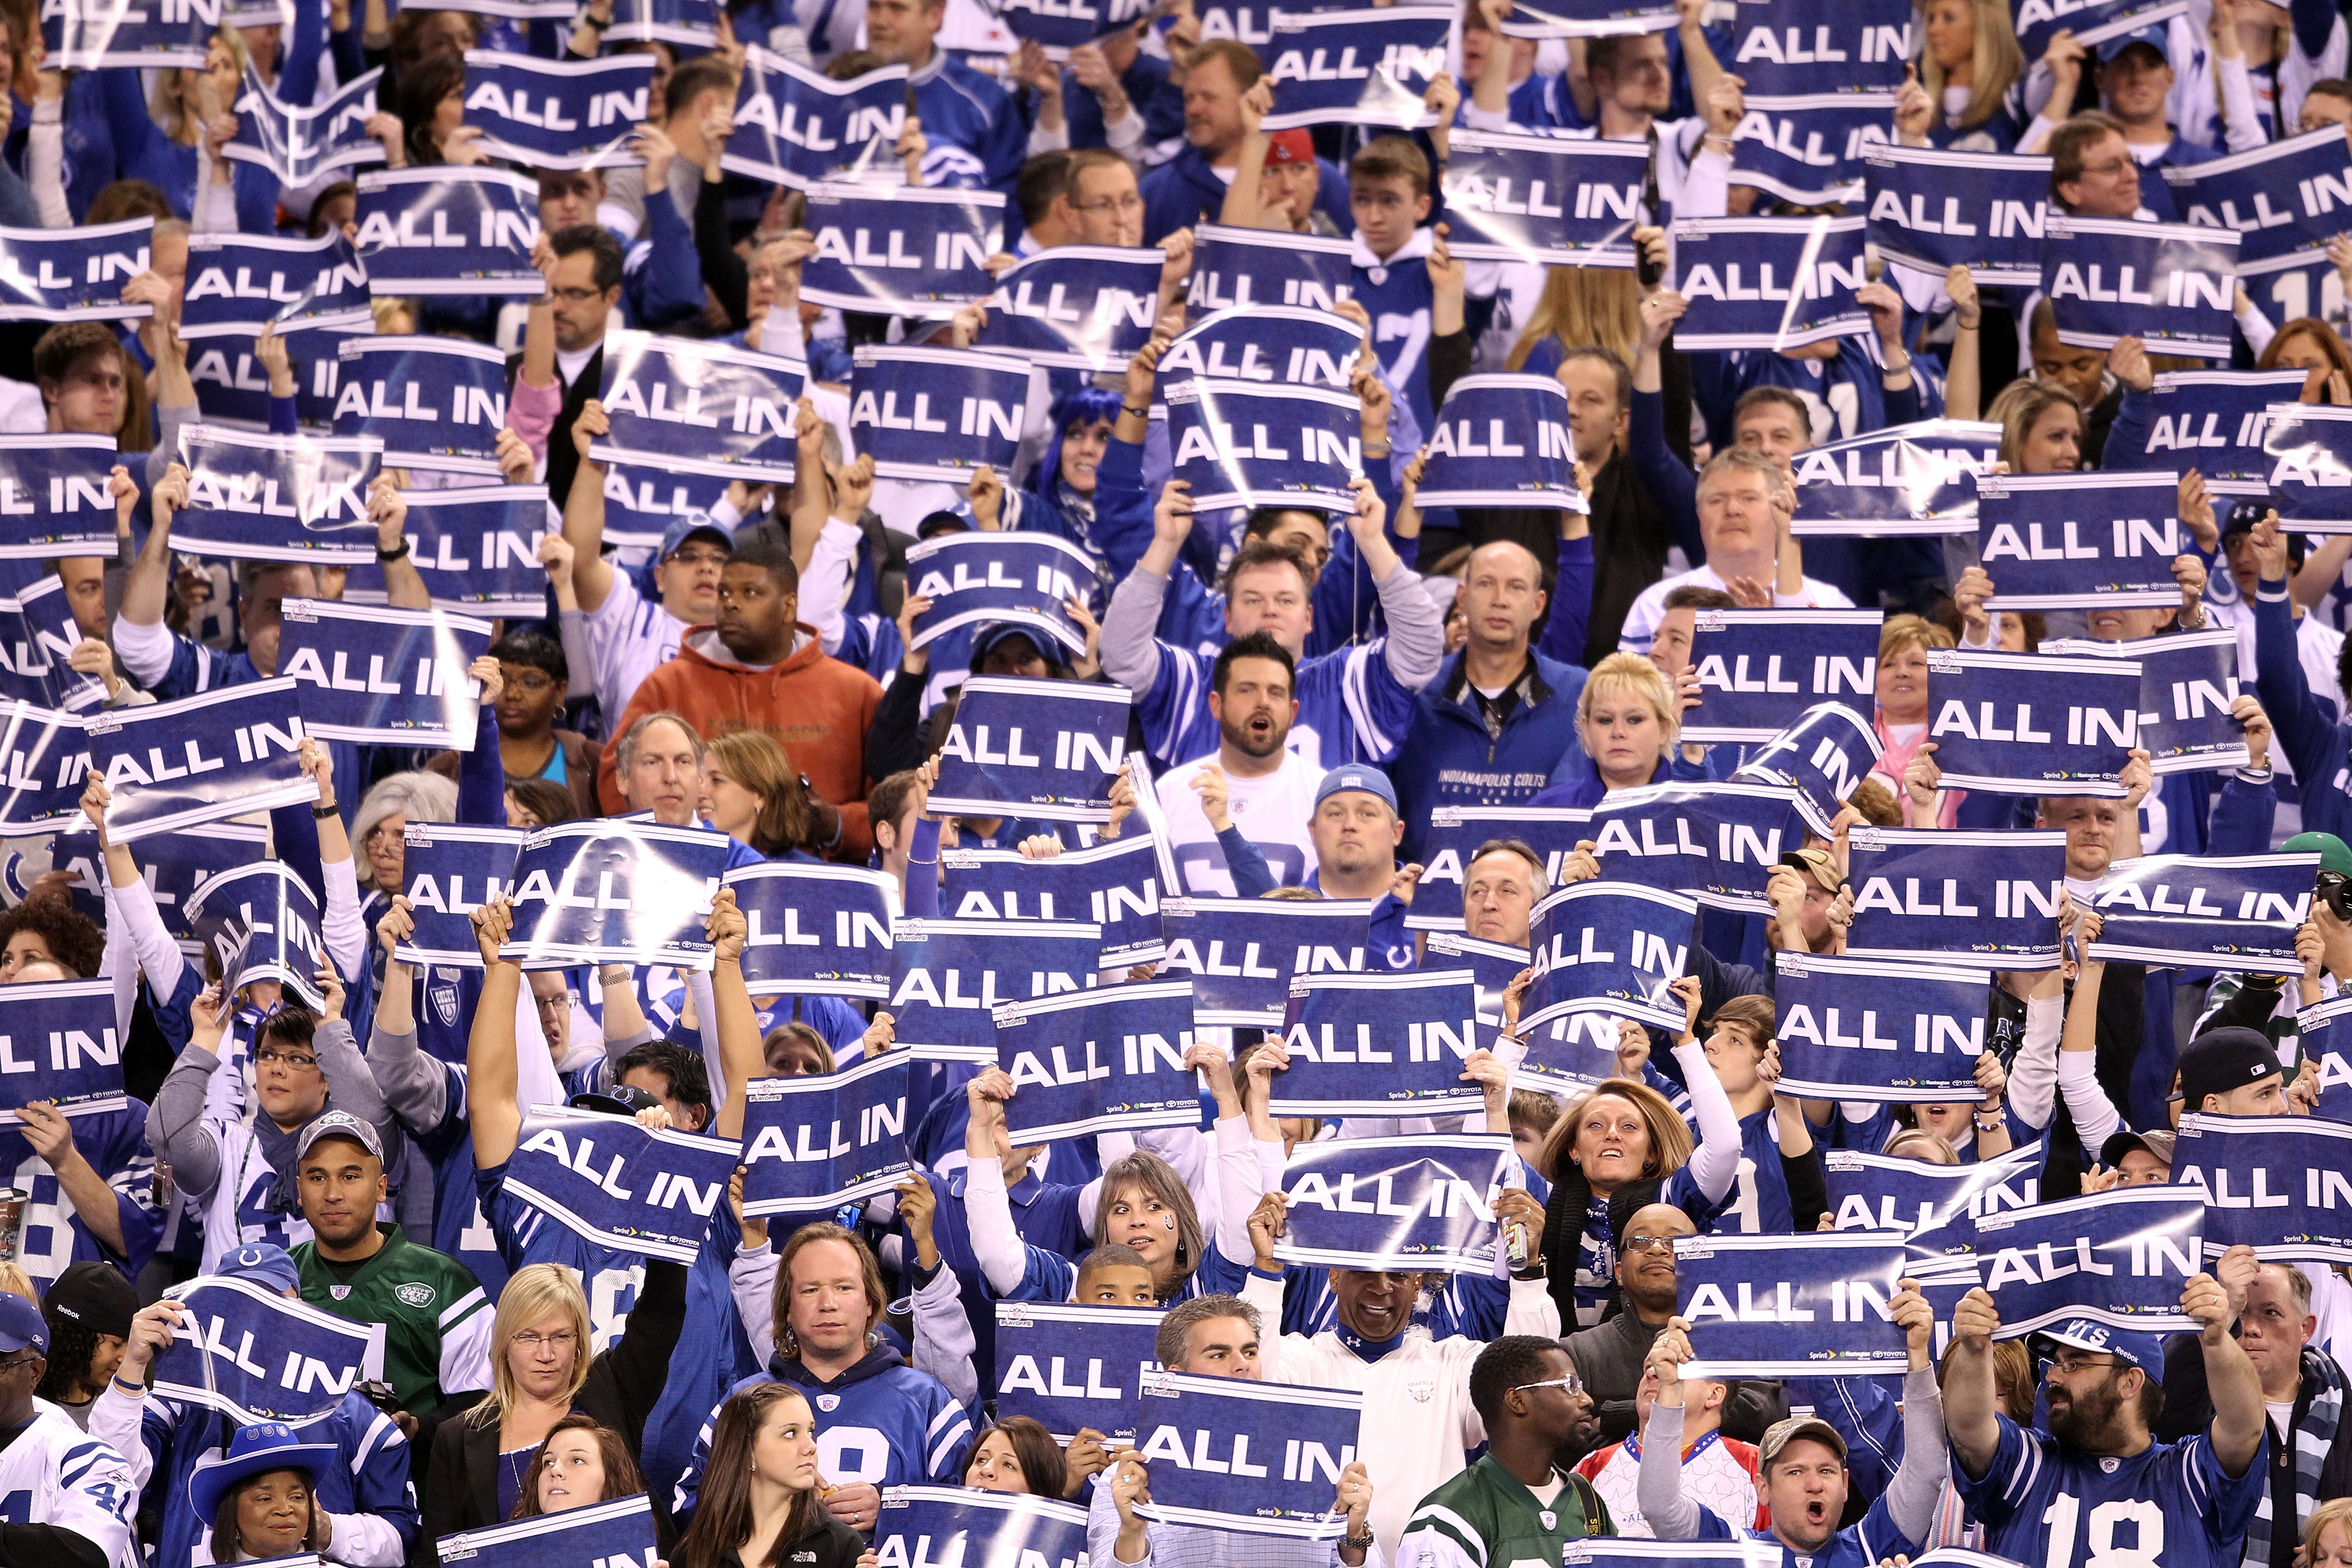 INDIANAPOLIS, IN - JANUARY 08:  Fans of the Indianapolis Colts hold up signs which read 'All In' in support of their team against the New York Jets during their 2011 AFC wild card playoff game at Lucas Oil Stadium on January 8, 2011 in Indianapolis, India